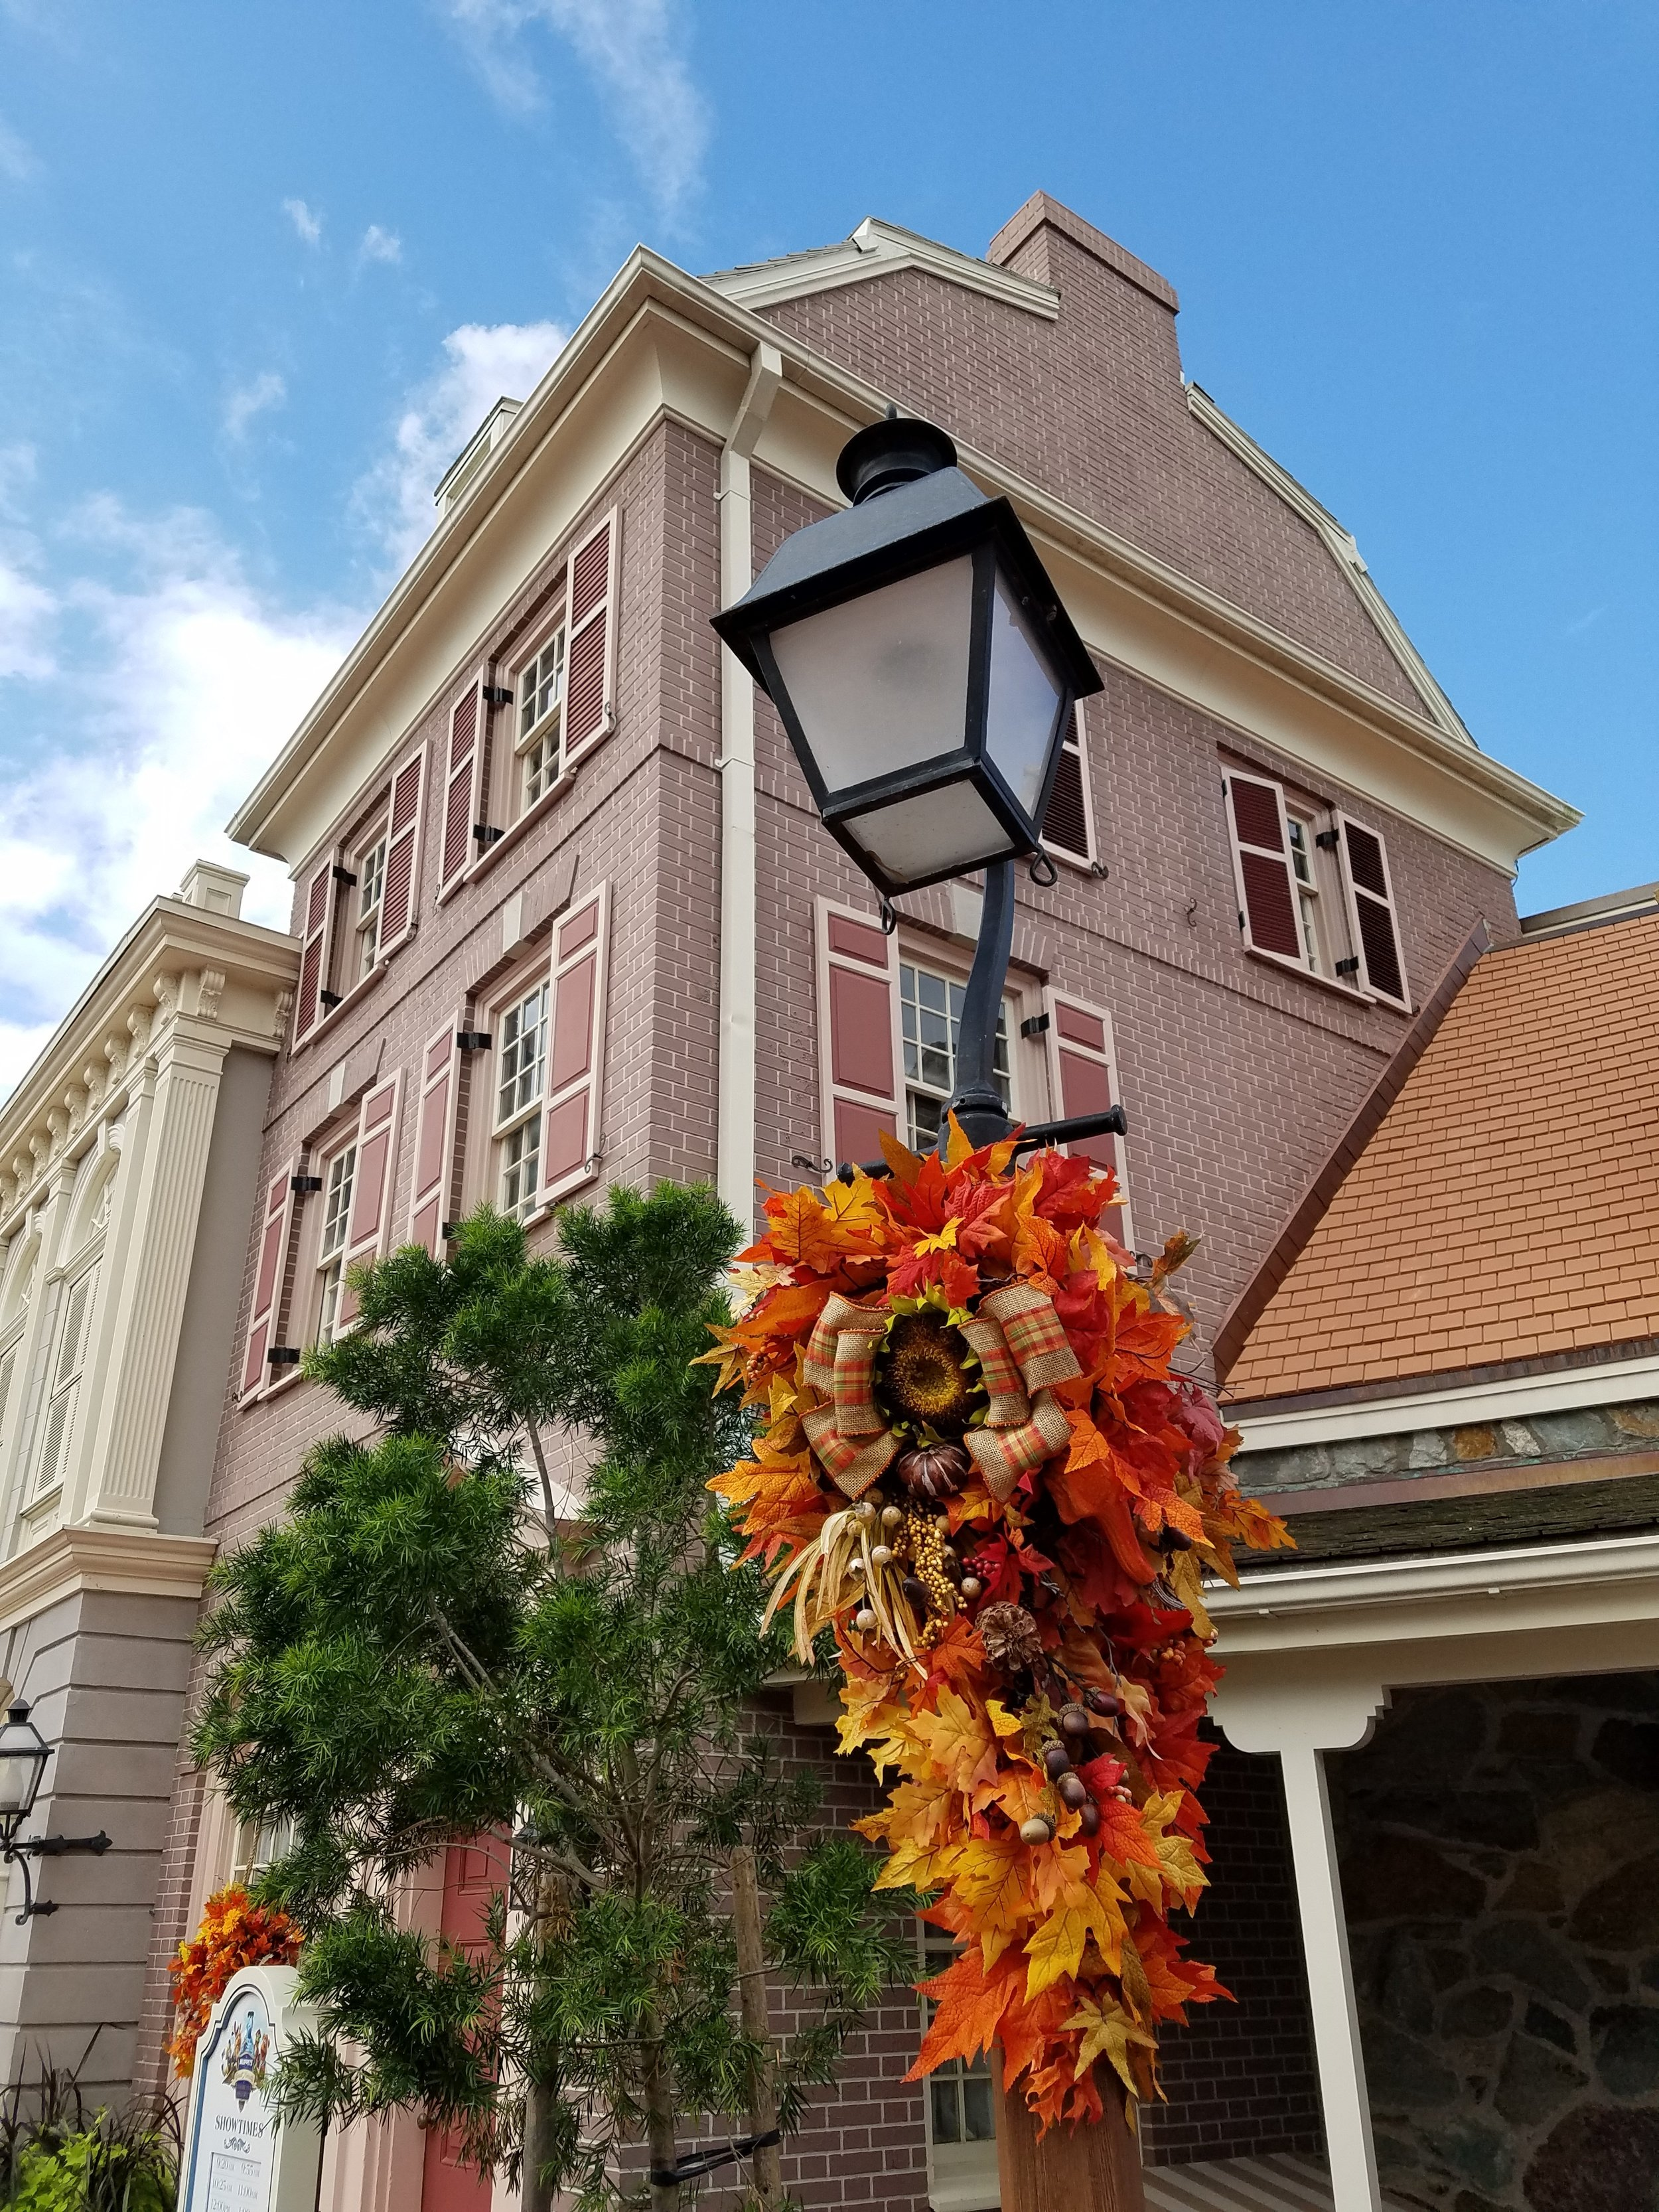 Mickey's Not-So-Scary Halloween Party at Disney's Magic Kingdom is full of candy, parades, and costumed characters. These tips will help you make the most of your time at the annual Halloween event at Disney World.